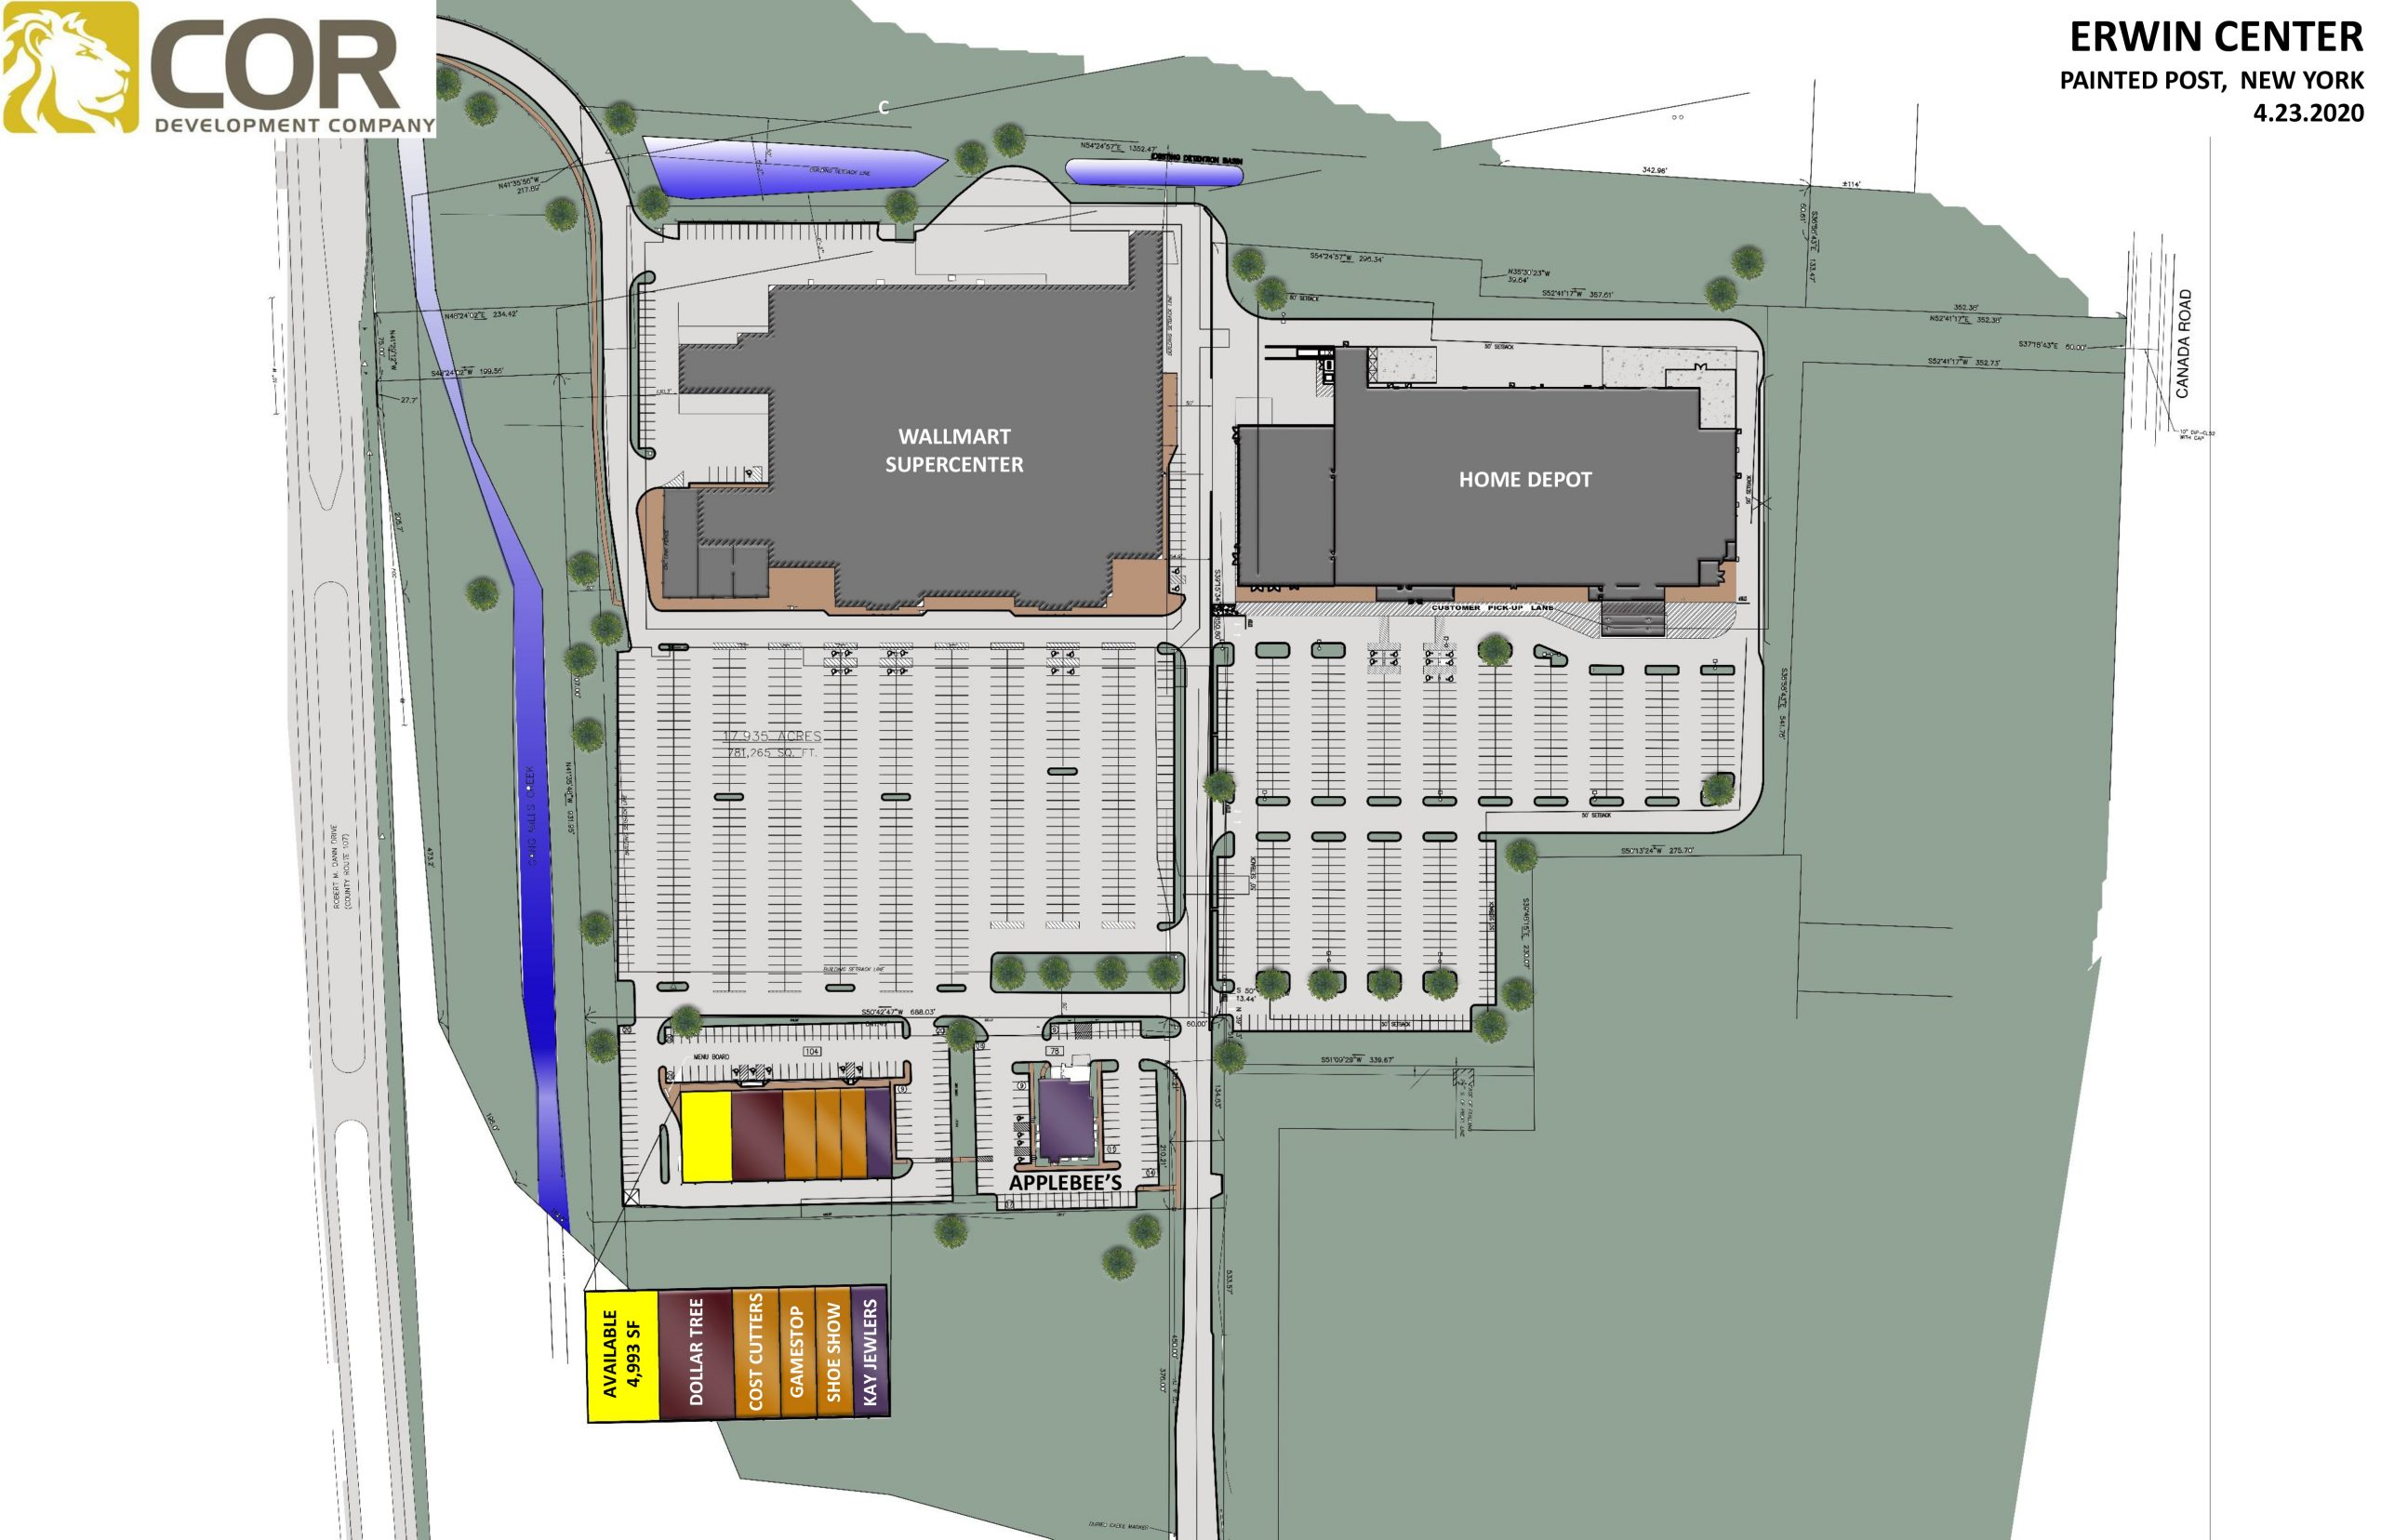 Erwin Center Master Site Plan scaled - Erwin Center – Painted Post, NY